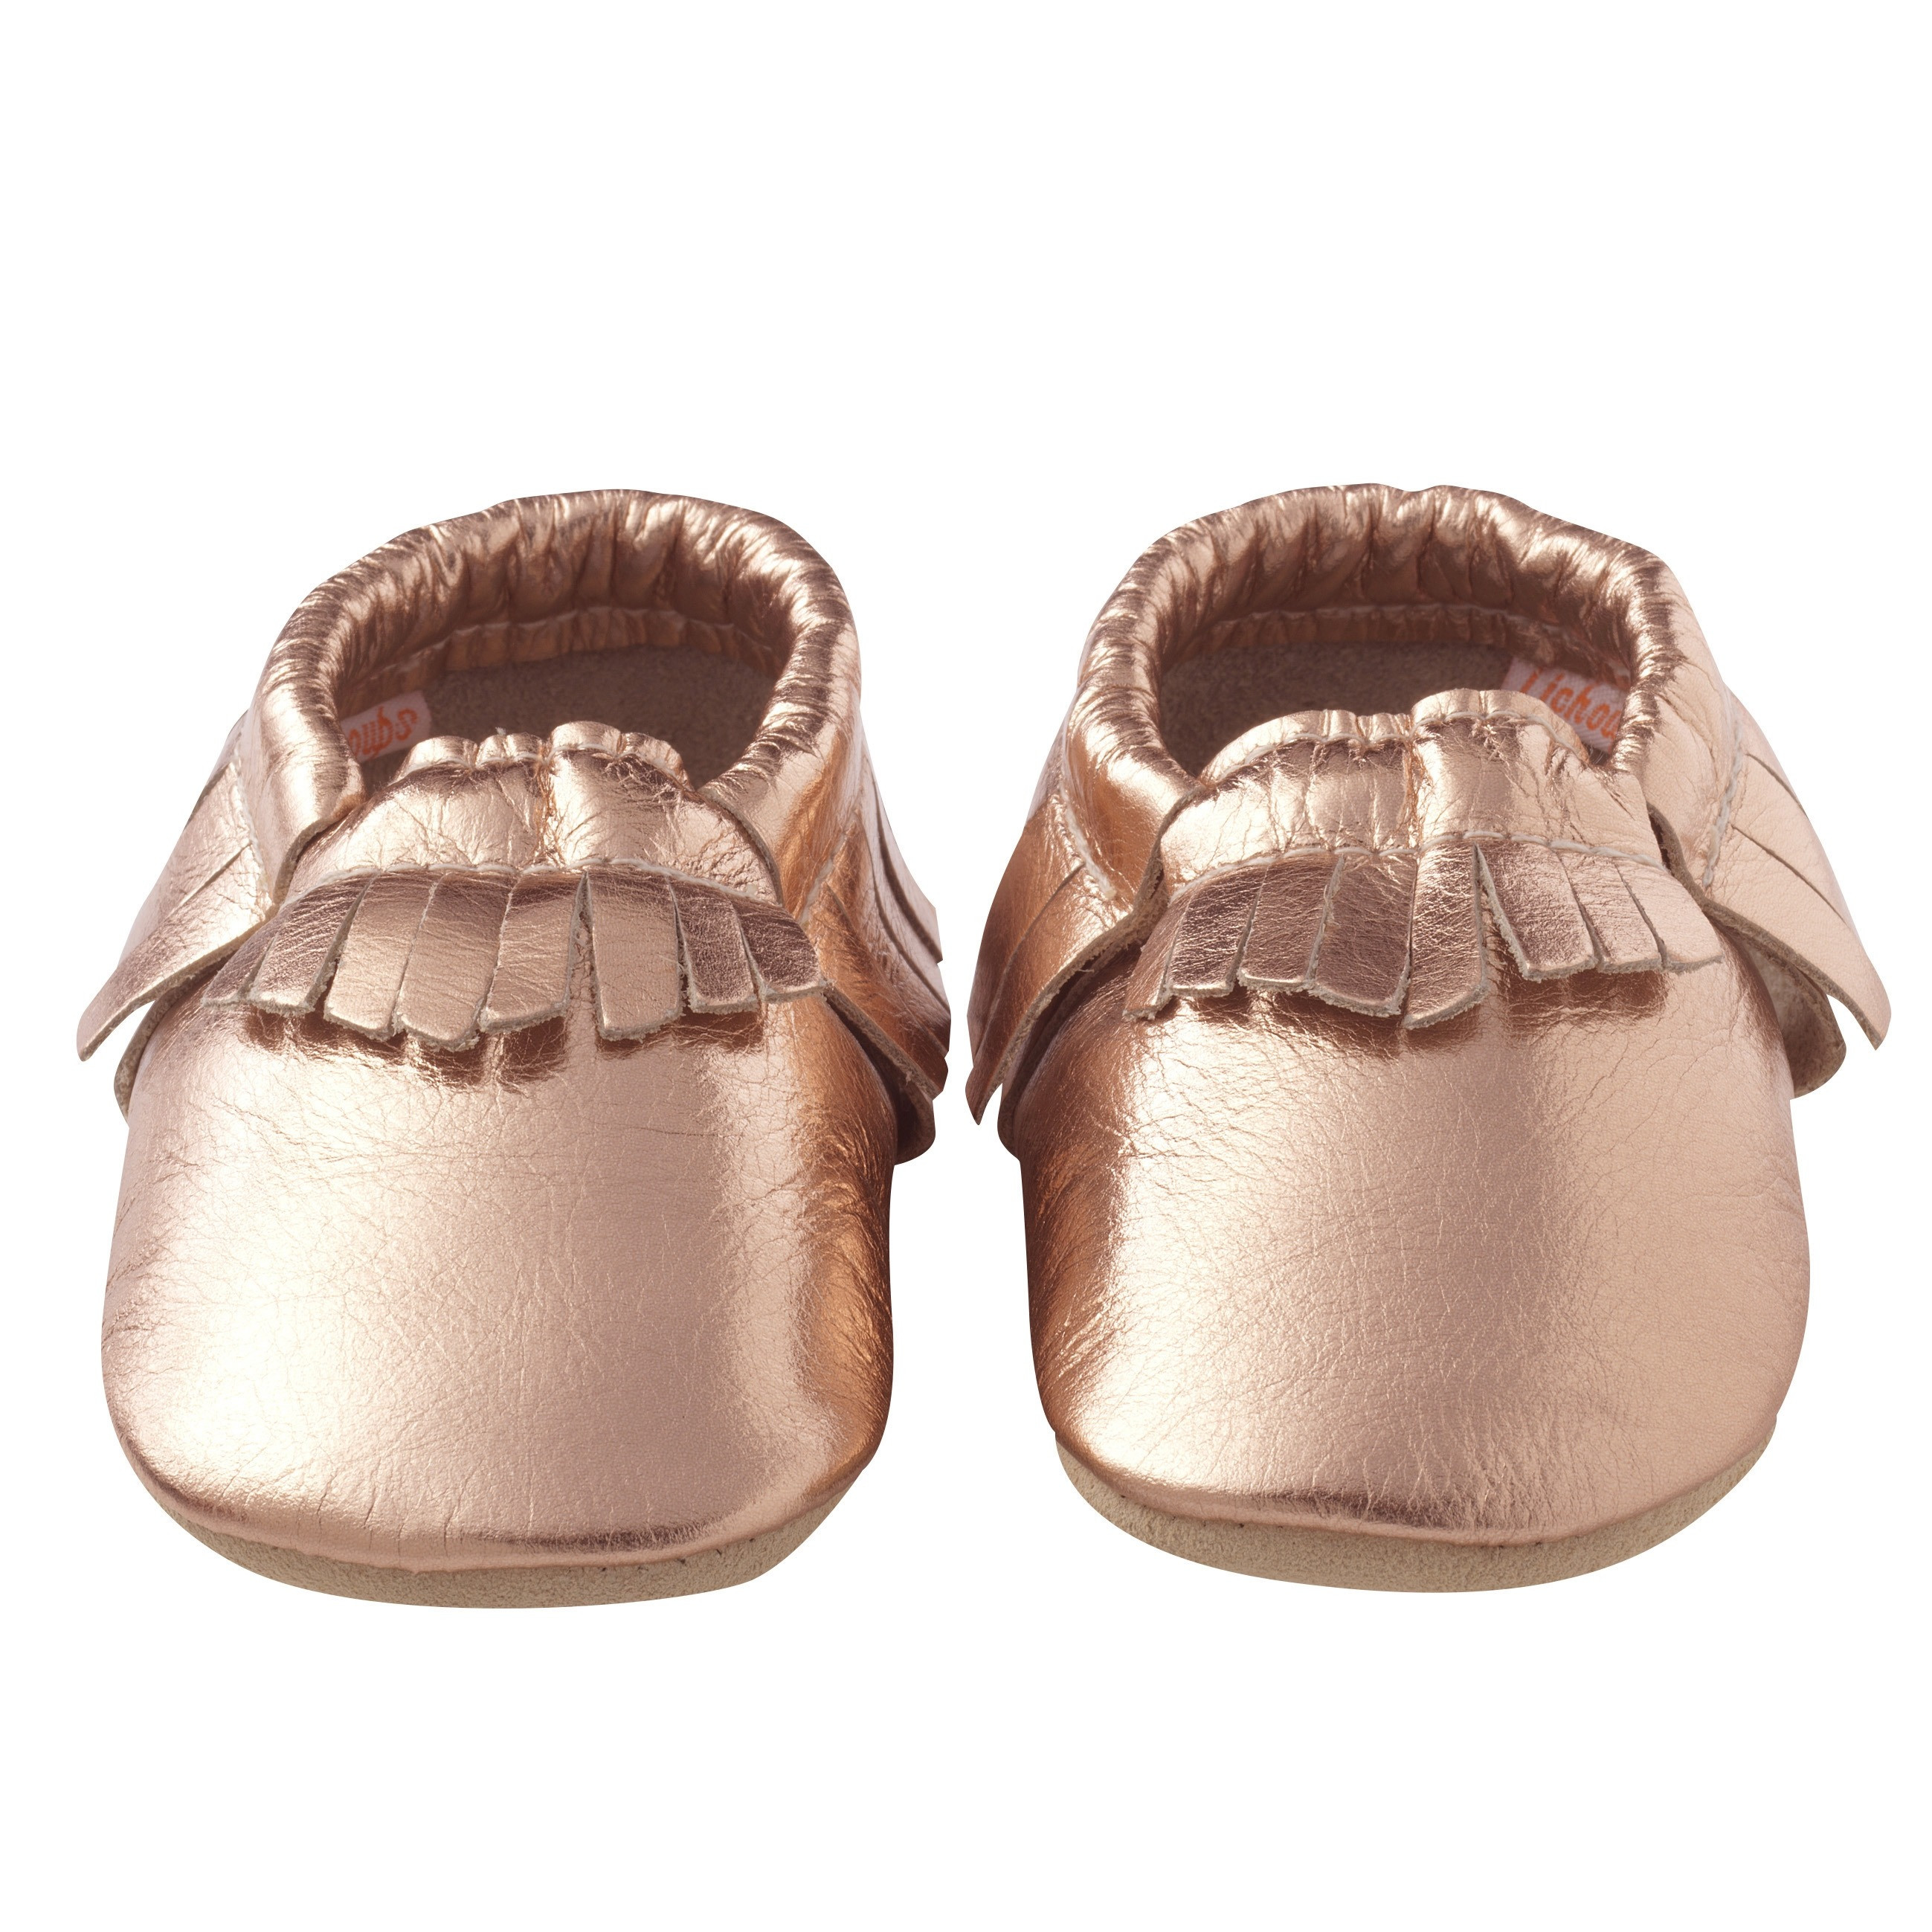 Chaussons-bebe-cuir-souple-franges-rose-metallique-face